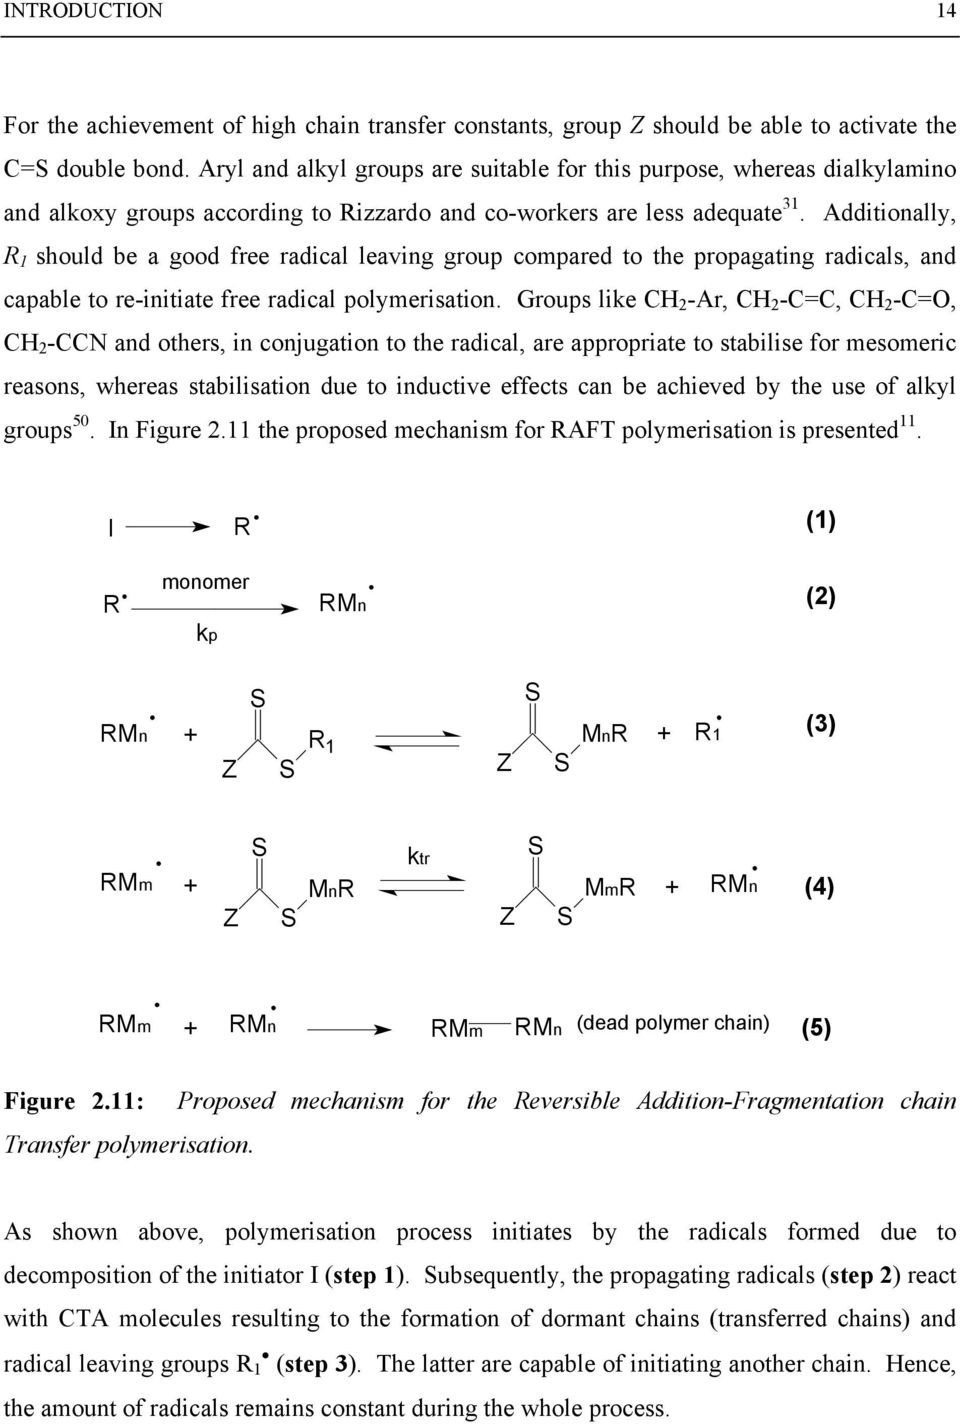 Additionally, R 1 should be a good free radical leaving group compared to the propagating radicals, and capable to re-initiate free radical polymerisation.